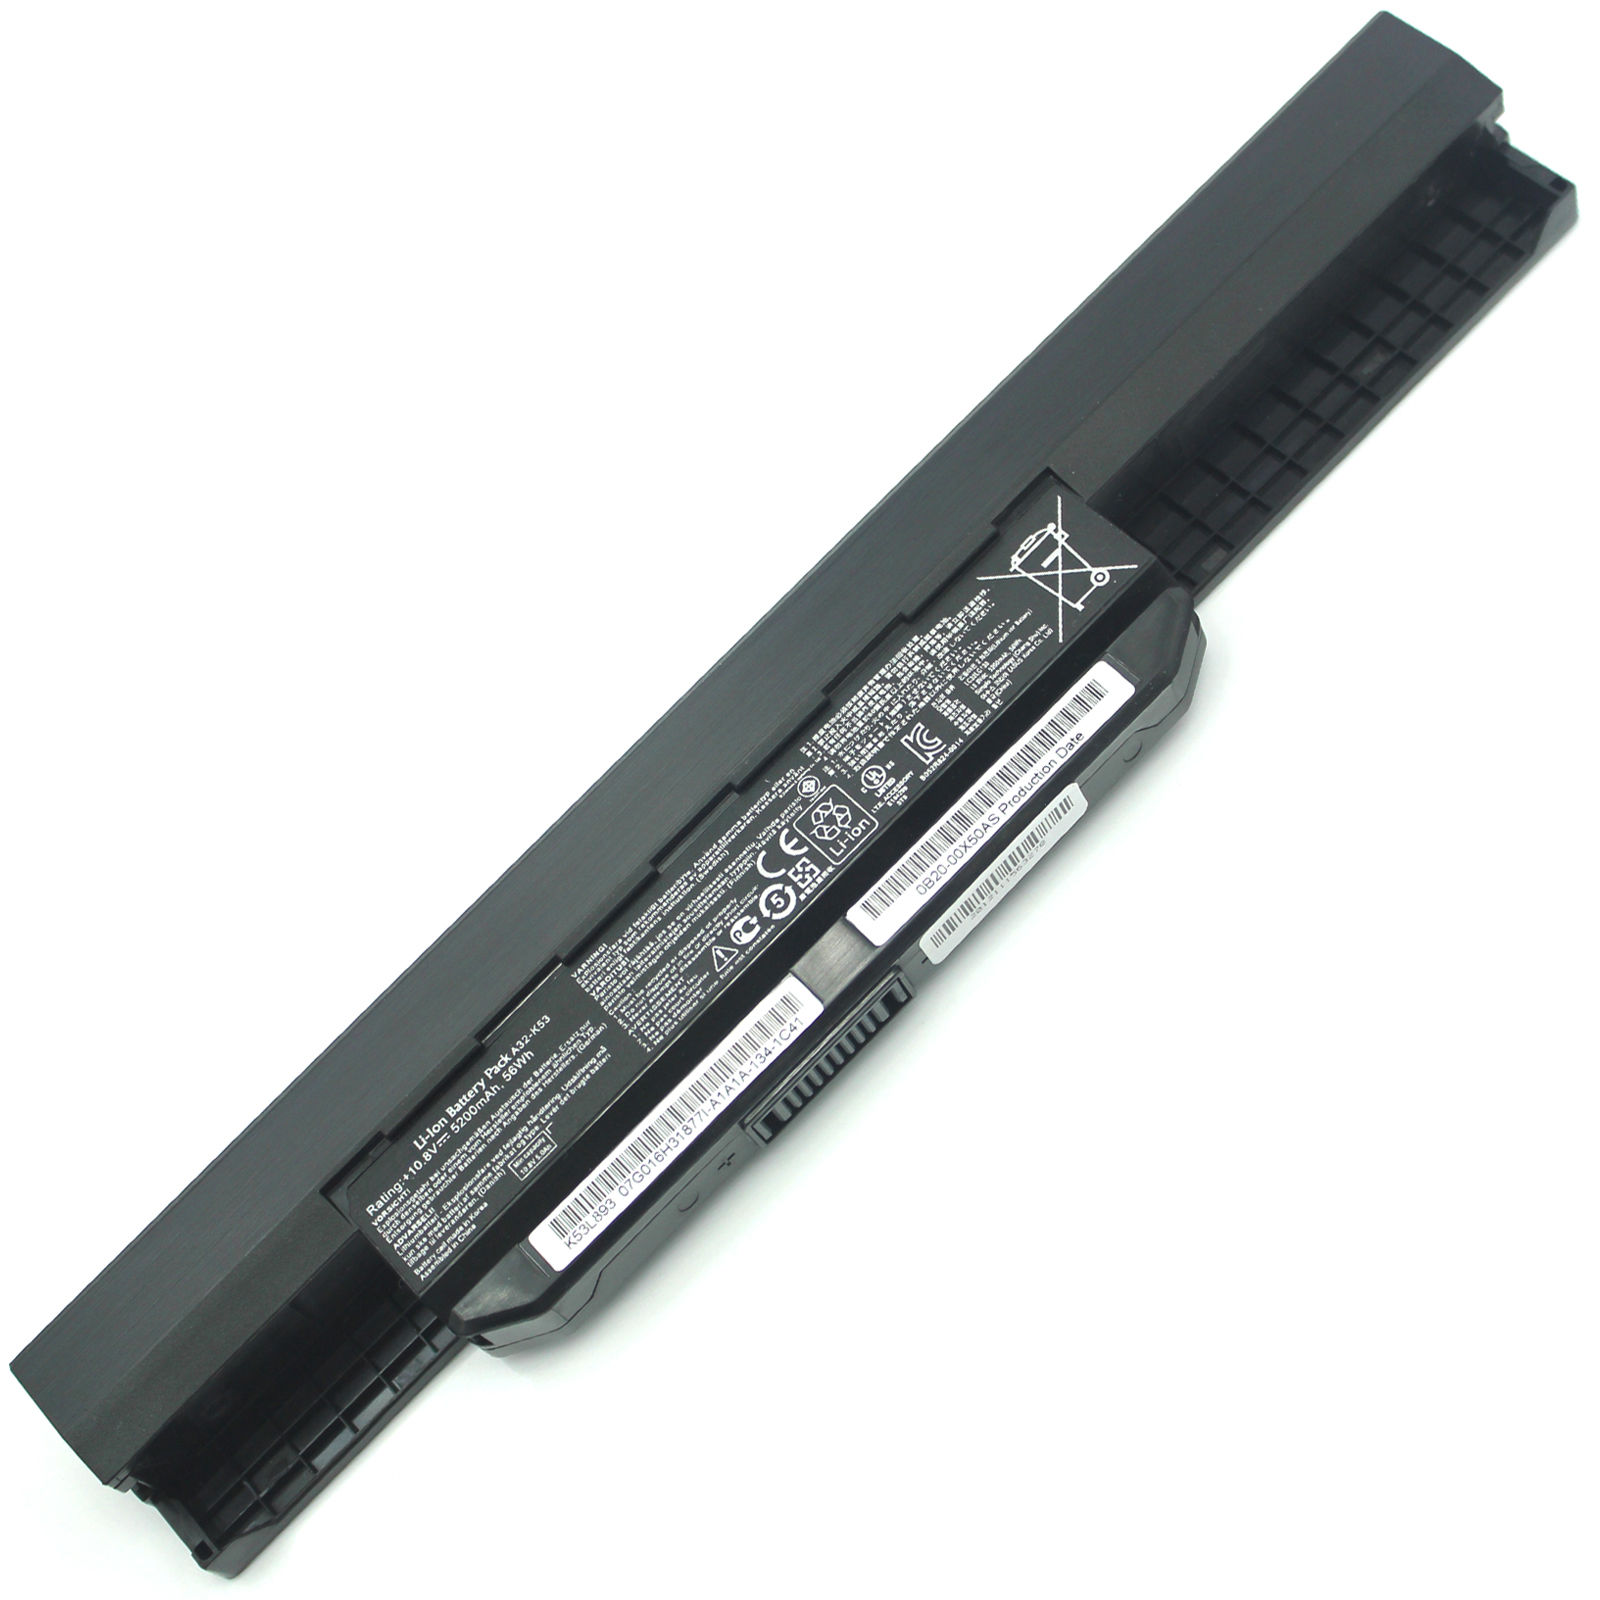 5200mAh Asus A43 A53 K43 A32-K53 Batterie PC Portable